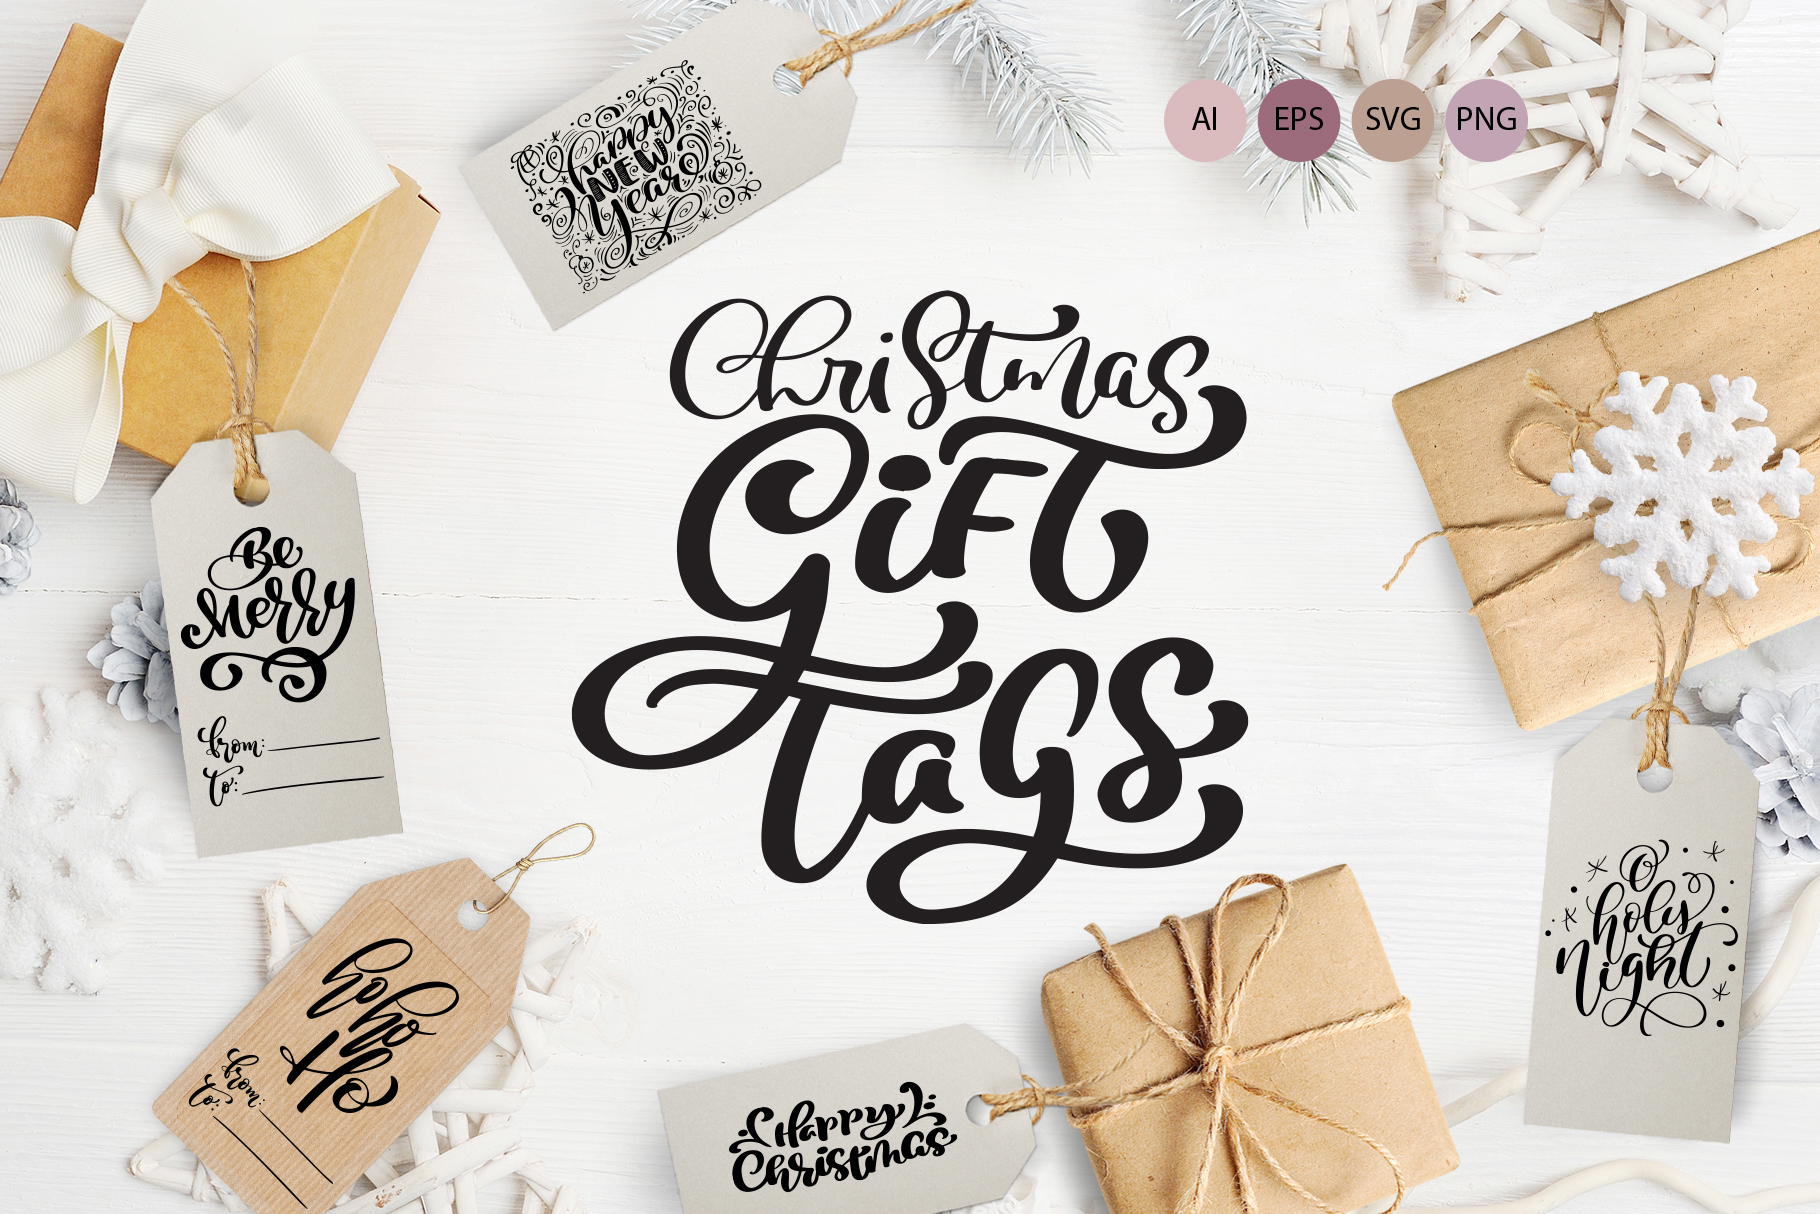 Download Free Christmas Gift Tags Graphic By Happy Letters Creative Fabrica for Cricut Explore, Silhouette and other cutting machines.